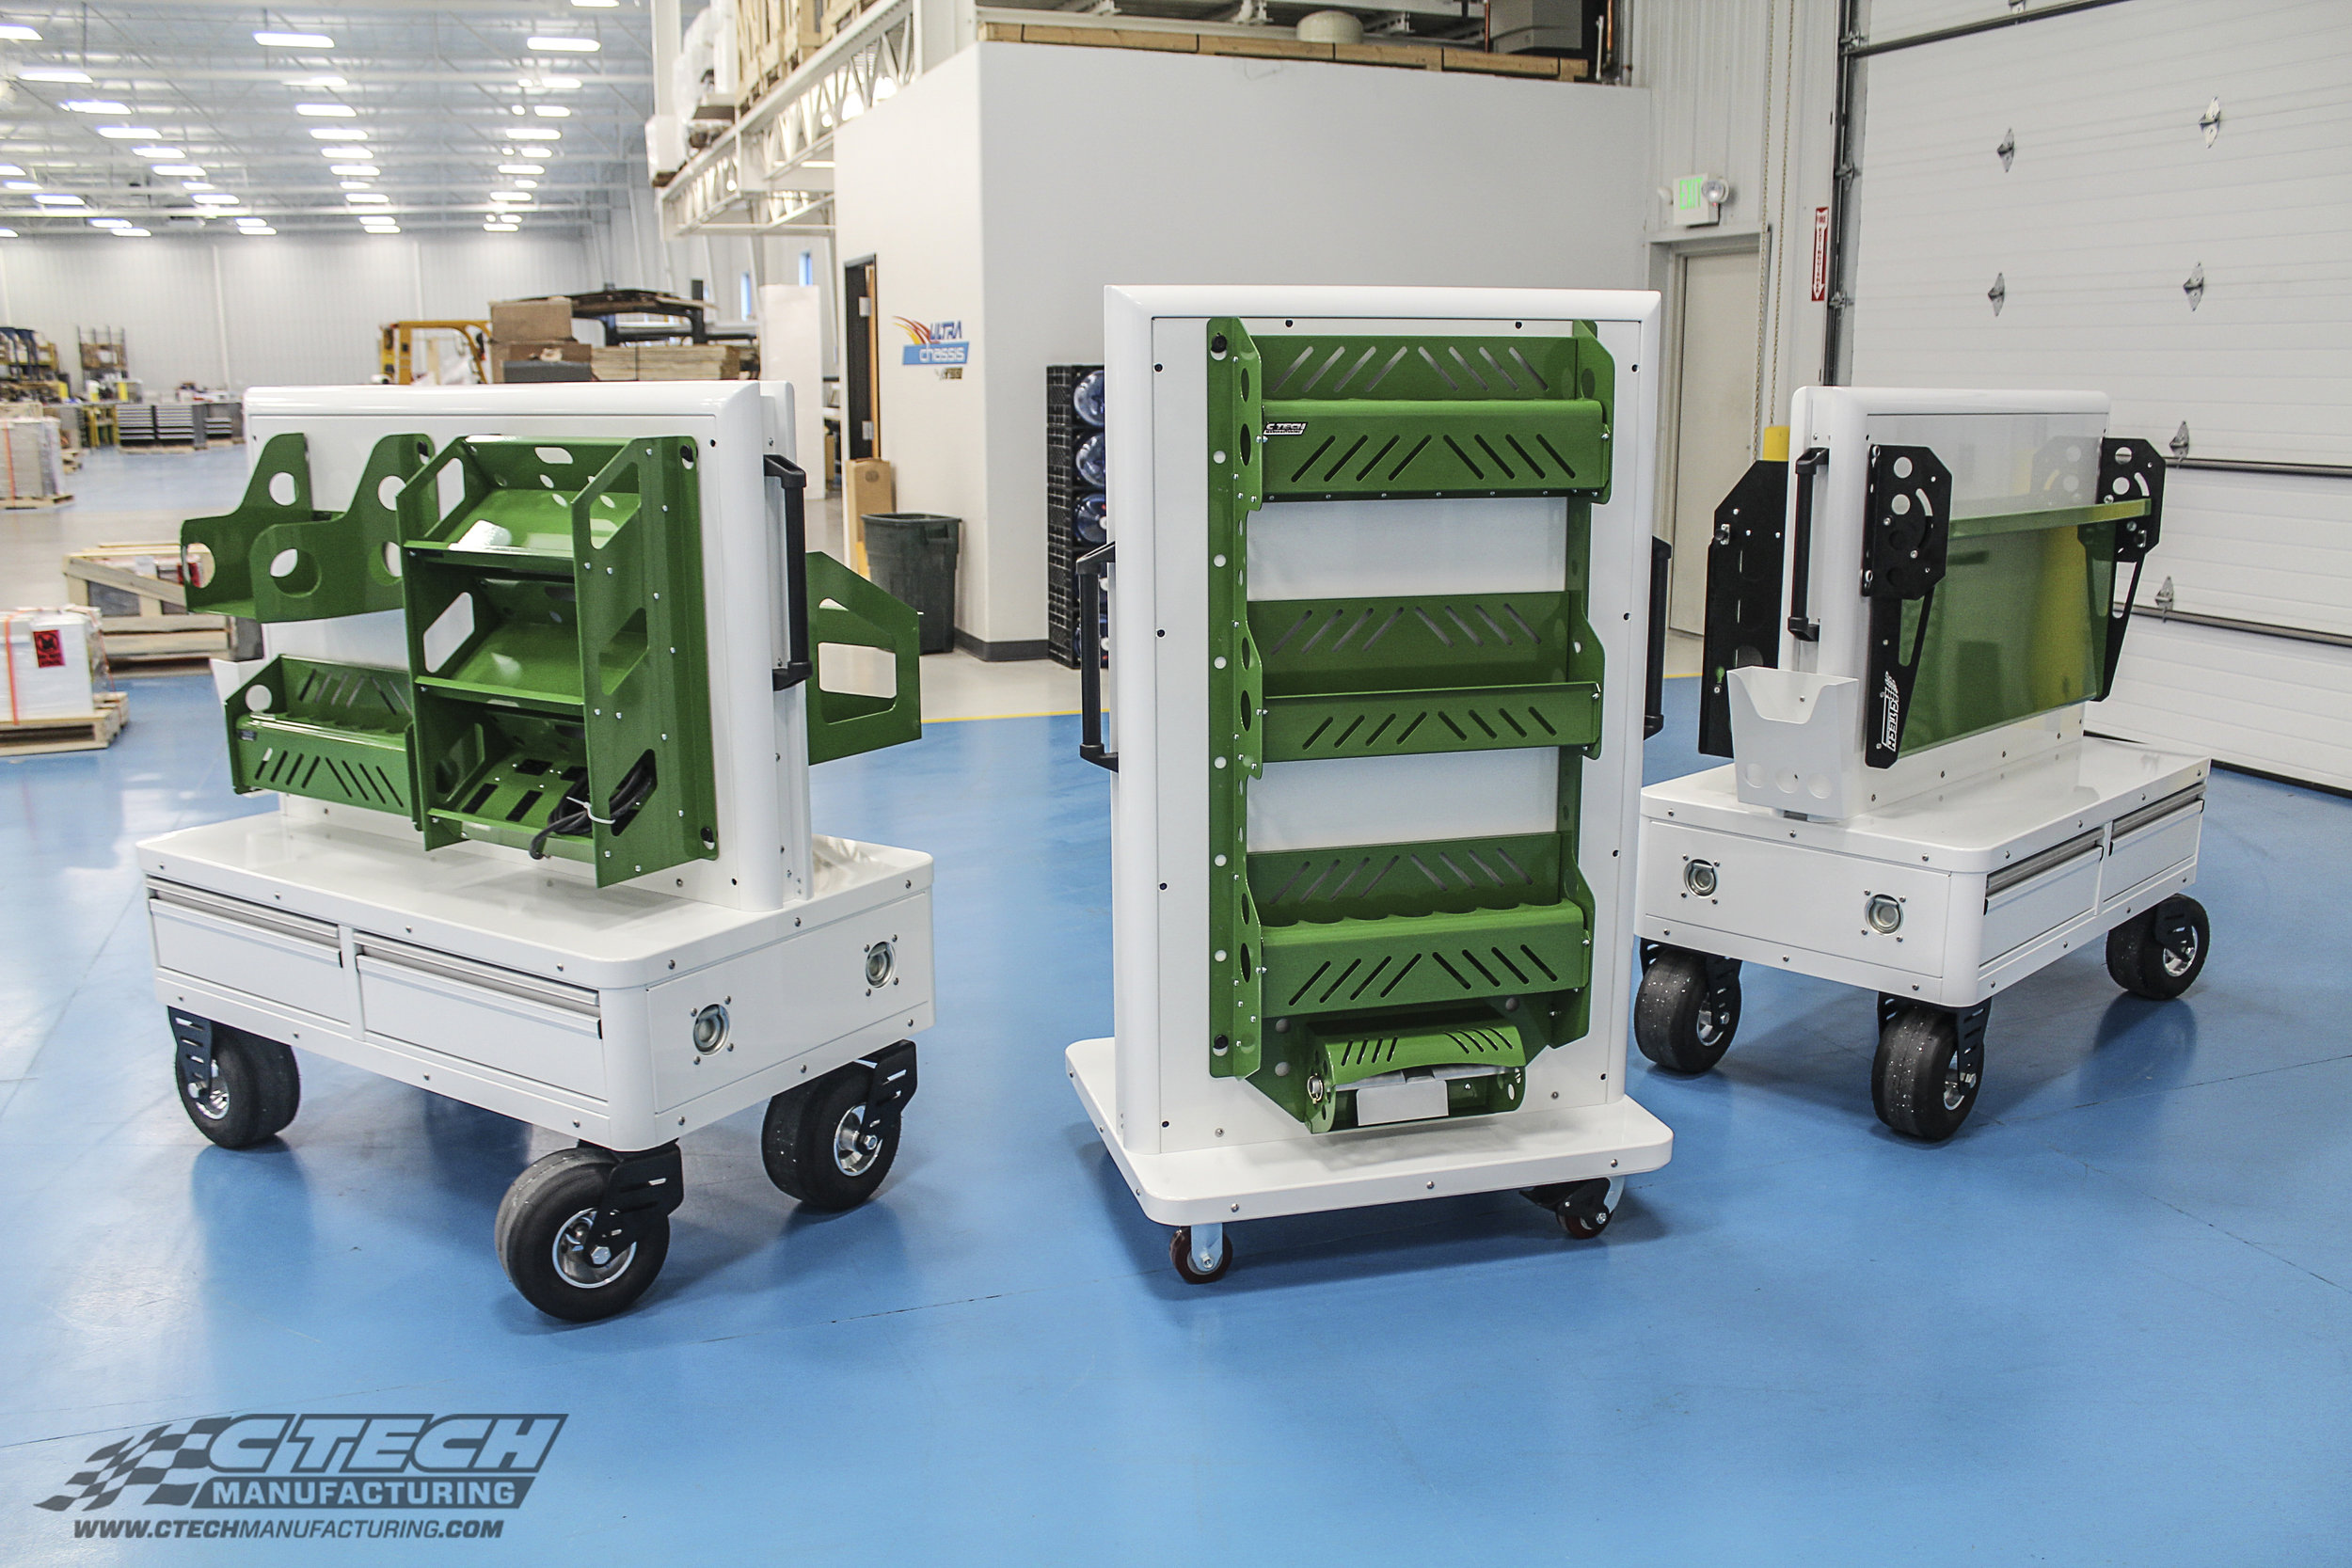 CTECH Display Carts and Blackline Accessories are an aesthetic combo. Here are a few examples of standard display carts configured to show off those accessories. They look just as good on their own, however!